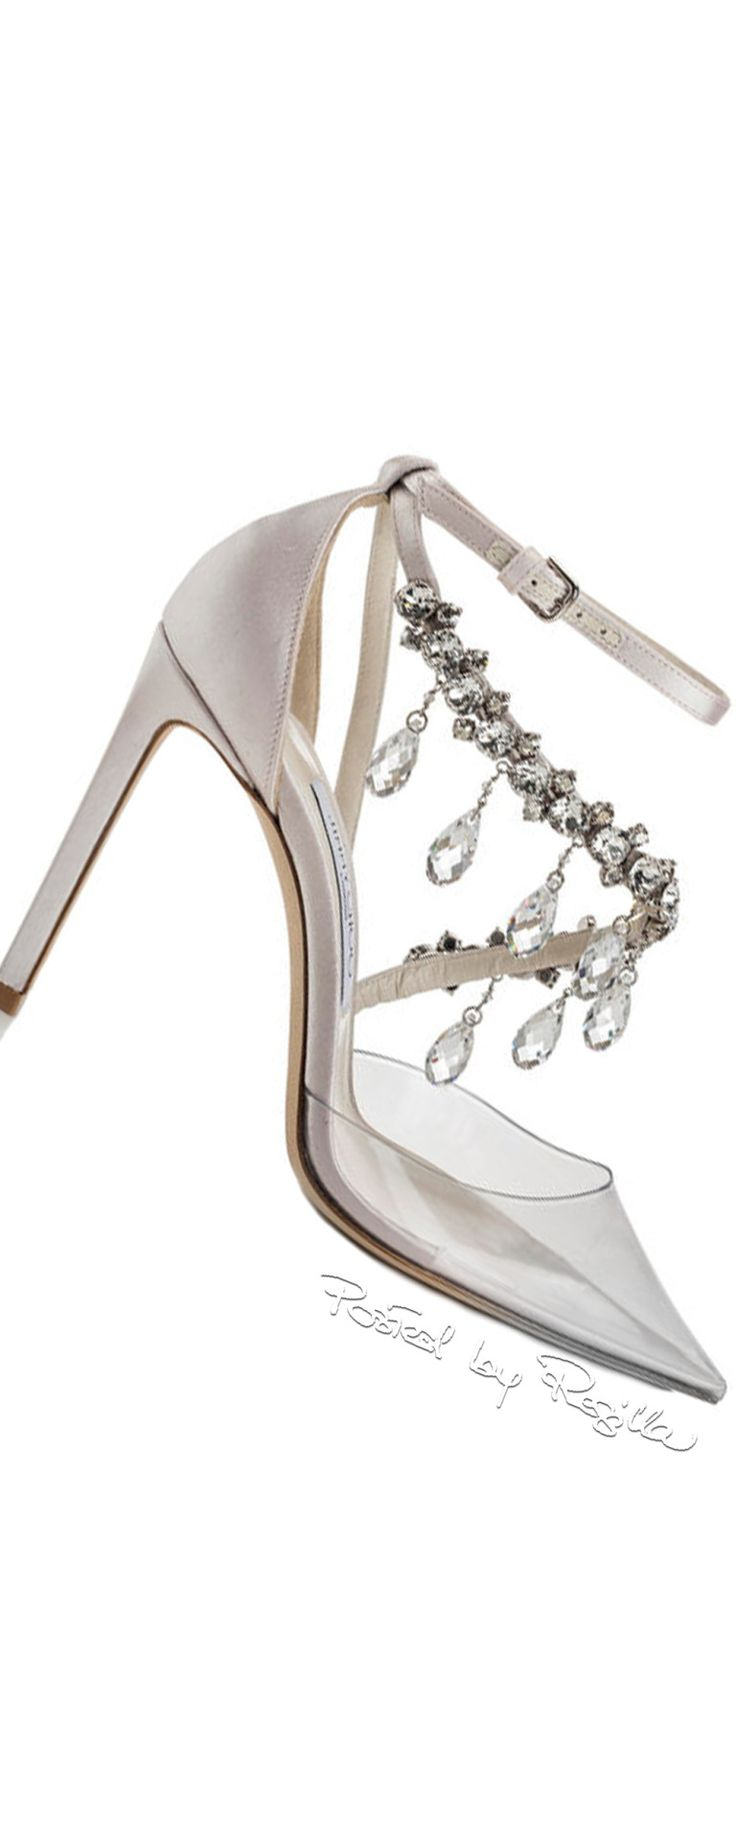 regilla jimmy choo pumps with plexispitze and swarovksi crystals shoes 2 pinterest. Black Bedroom Furniture Sets. Home Design Ideas